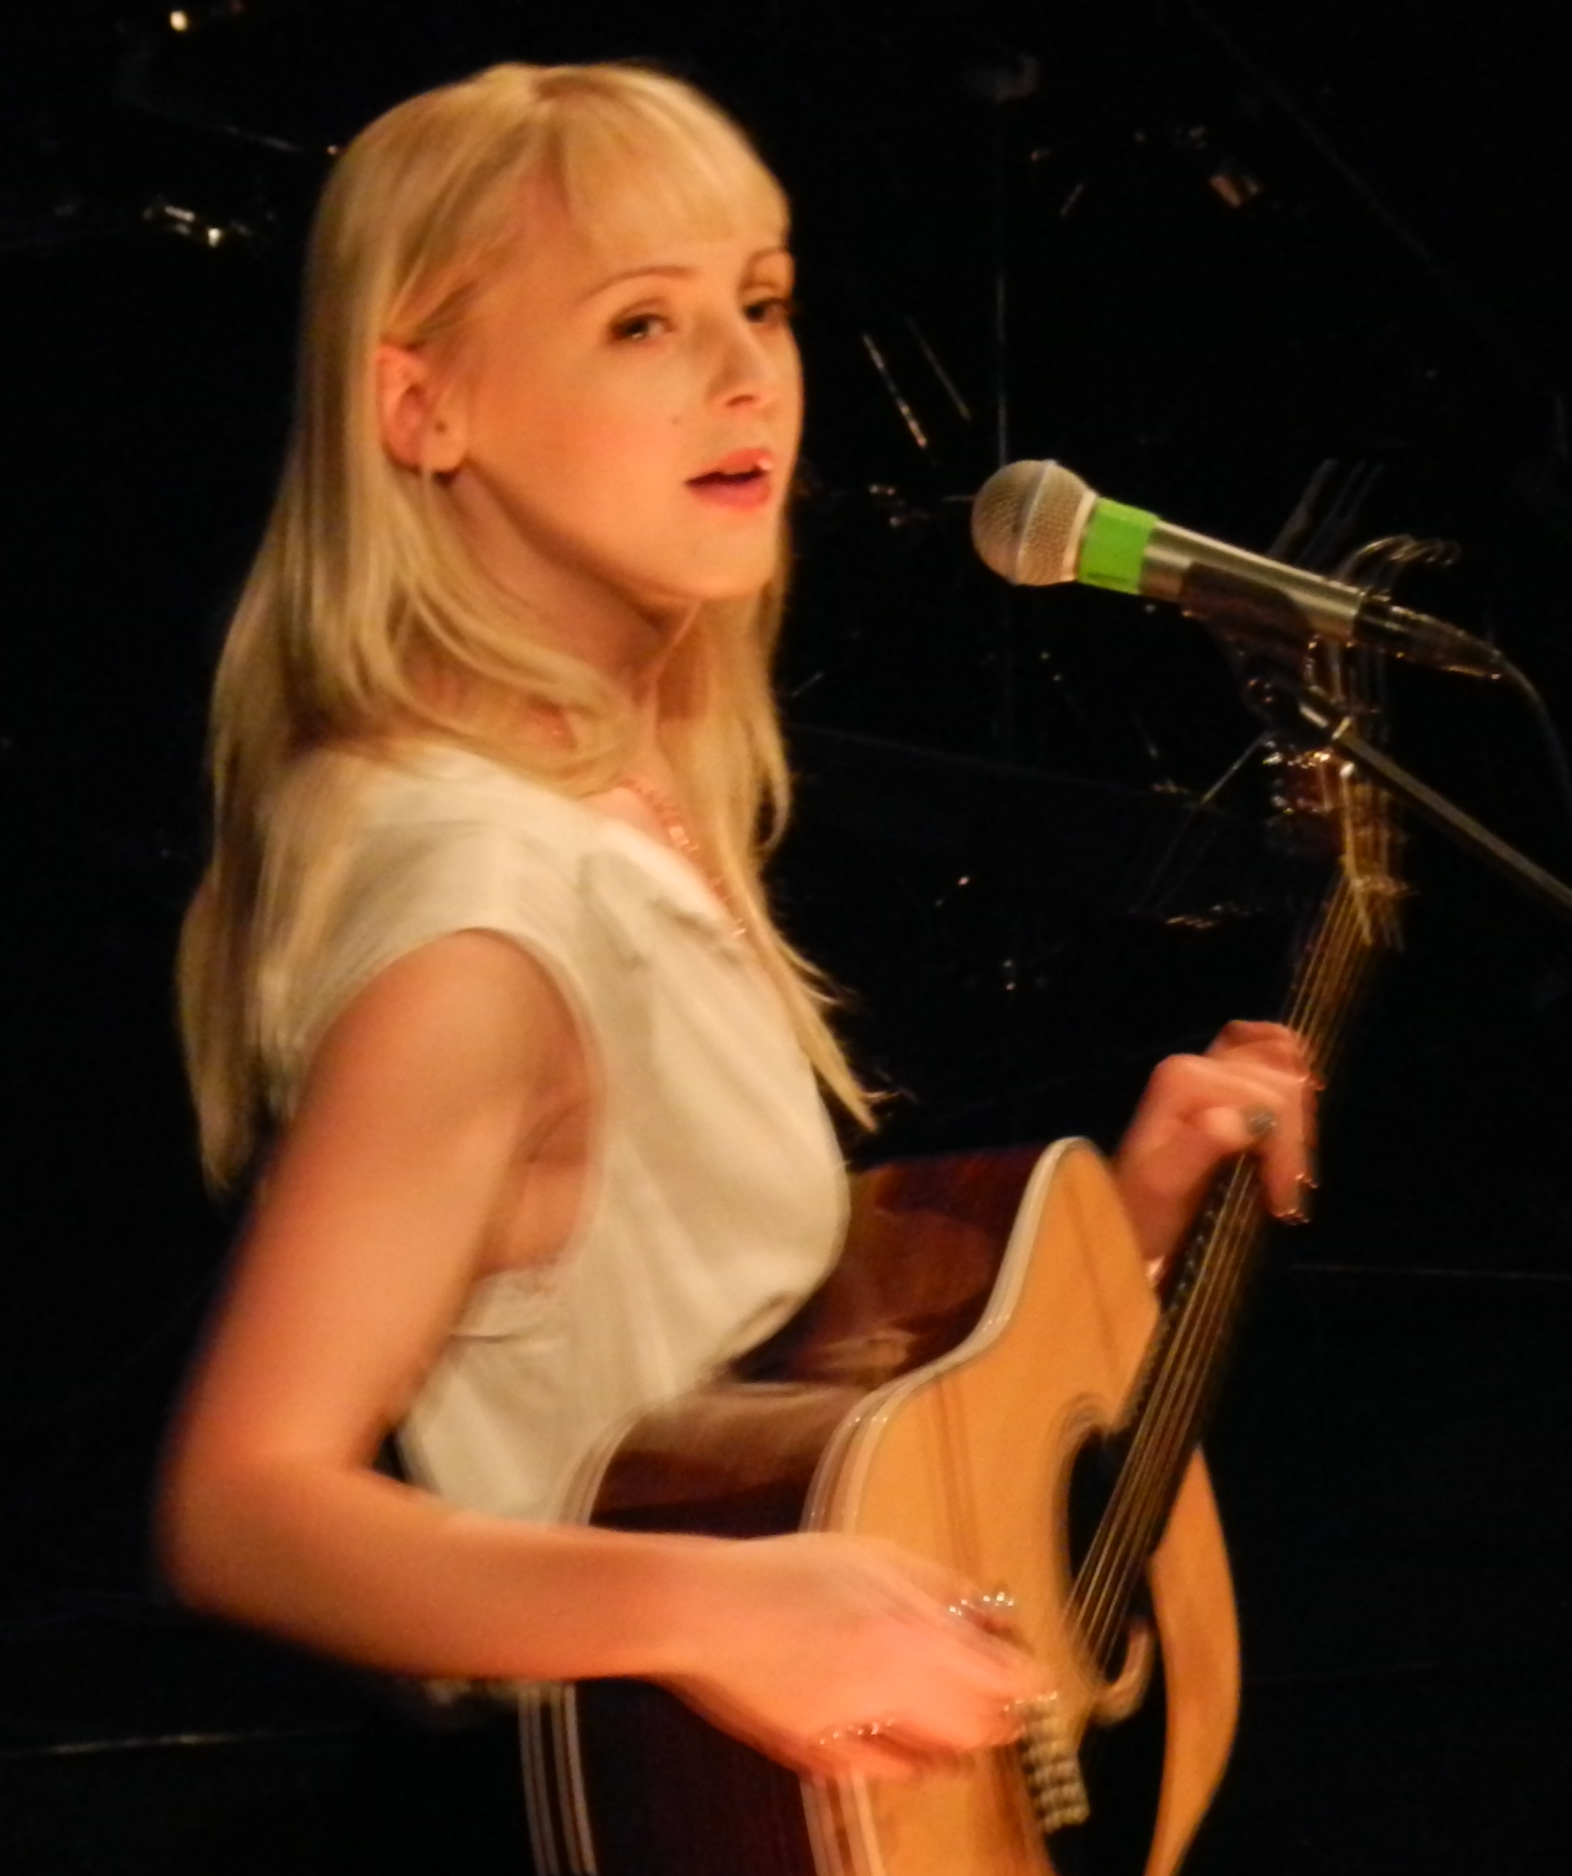 The 28-year old daughter of father (?) and mother(?) Laura Marling in 2018 photo. Laura Marling earned a  million dollar salary - leaving the net worth at 3 million in 2018